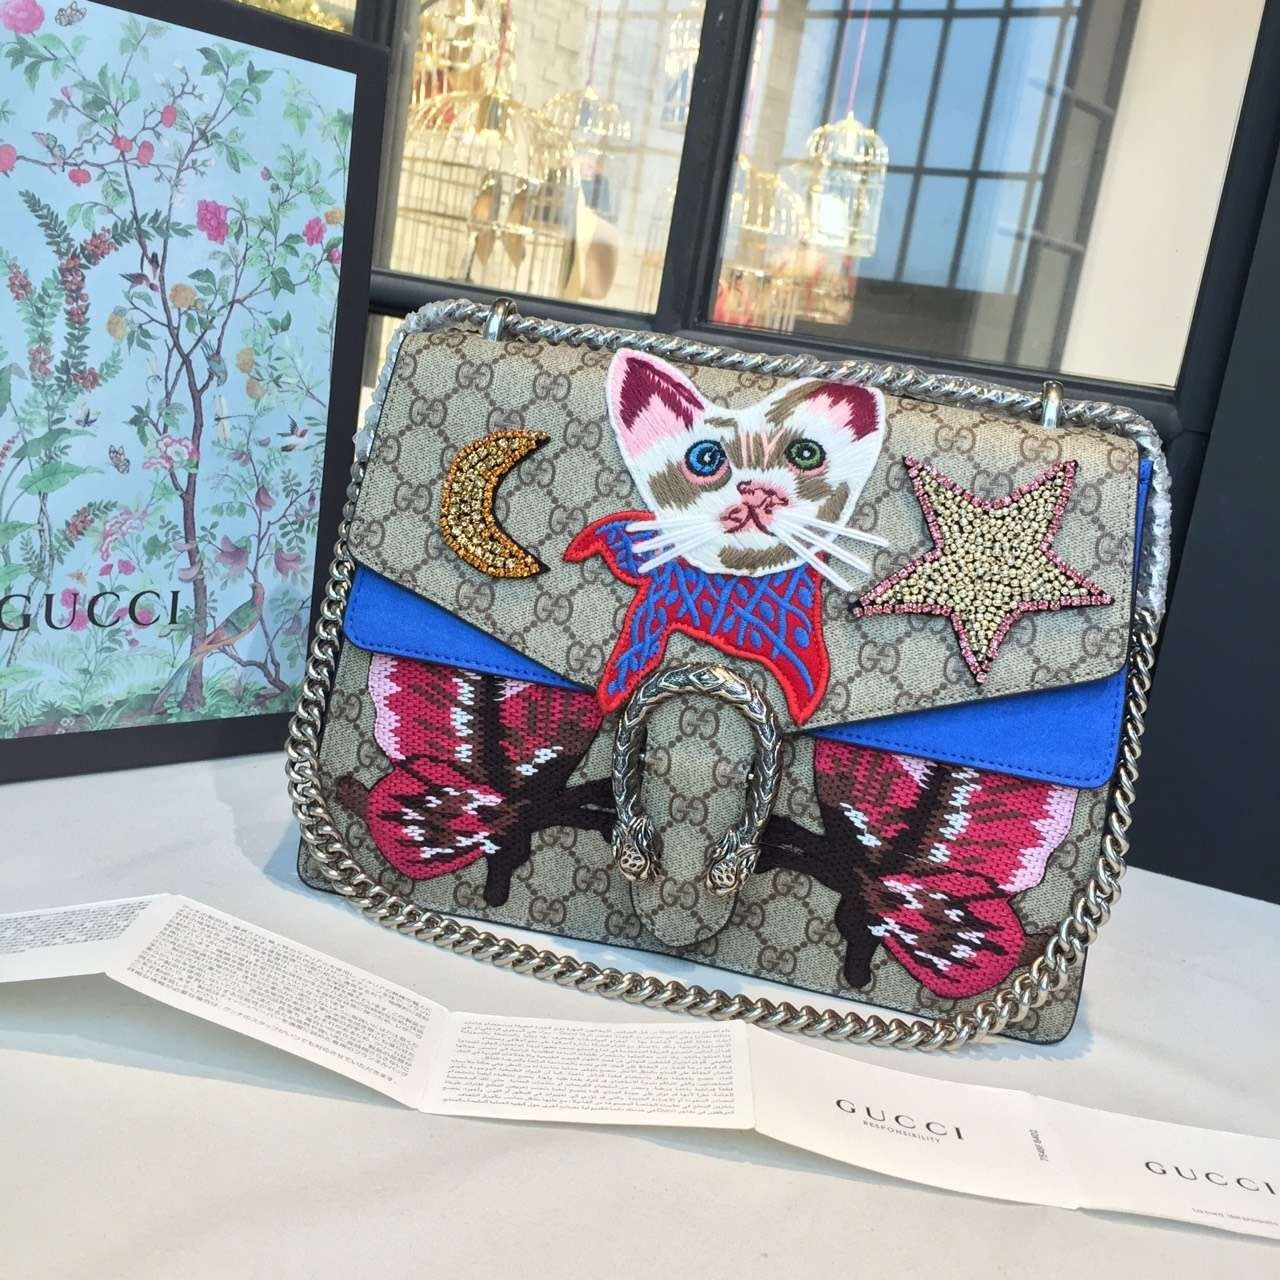 91f6b020f Gucci Dionysus GG Supreme Canvas Shoulder Medium Bag Embroidered Cat, Star  and Butterflies Bag Fall/Winter 2016 Collection, Blue Suede/Beige